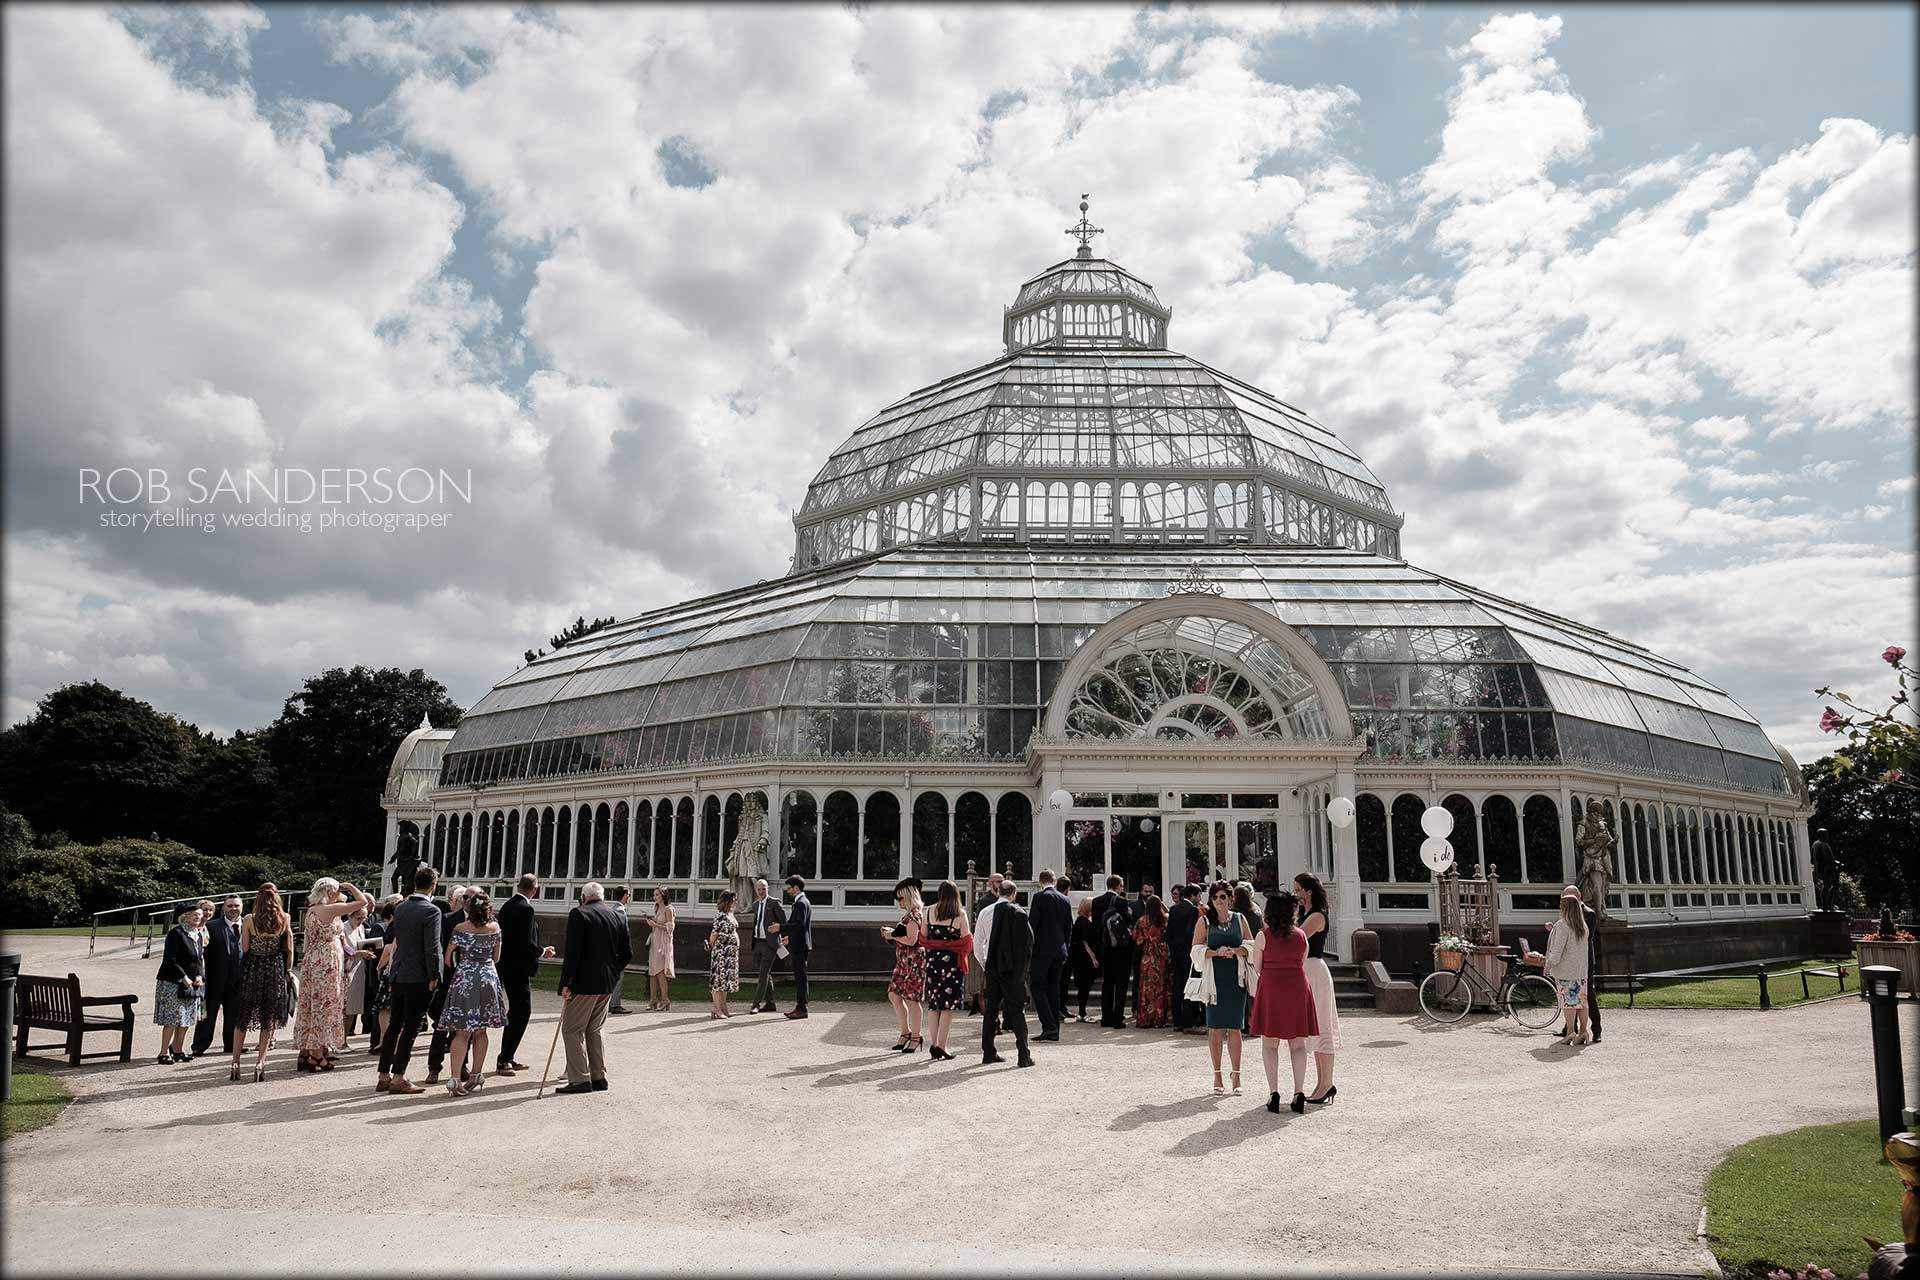 The Sefton Park Palm house